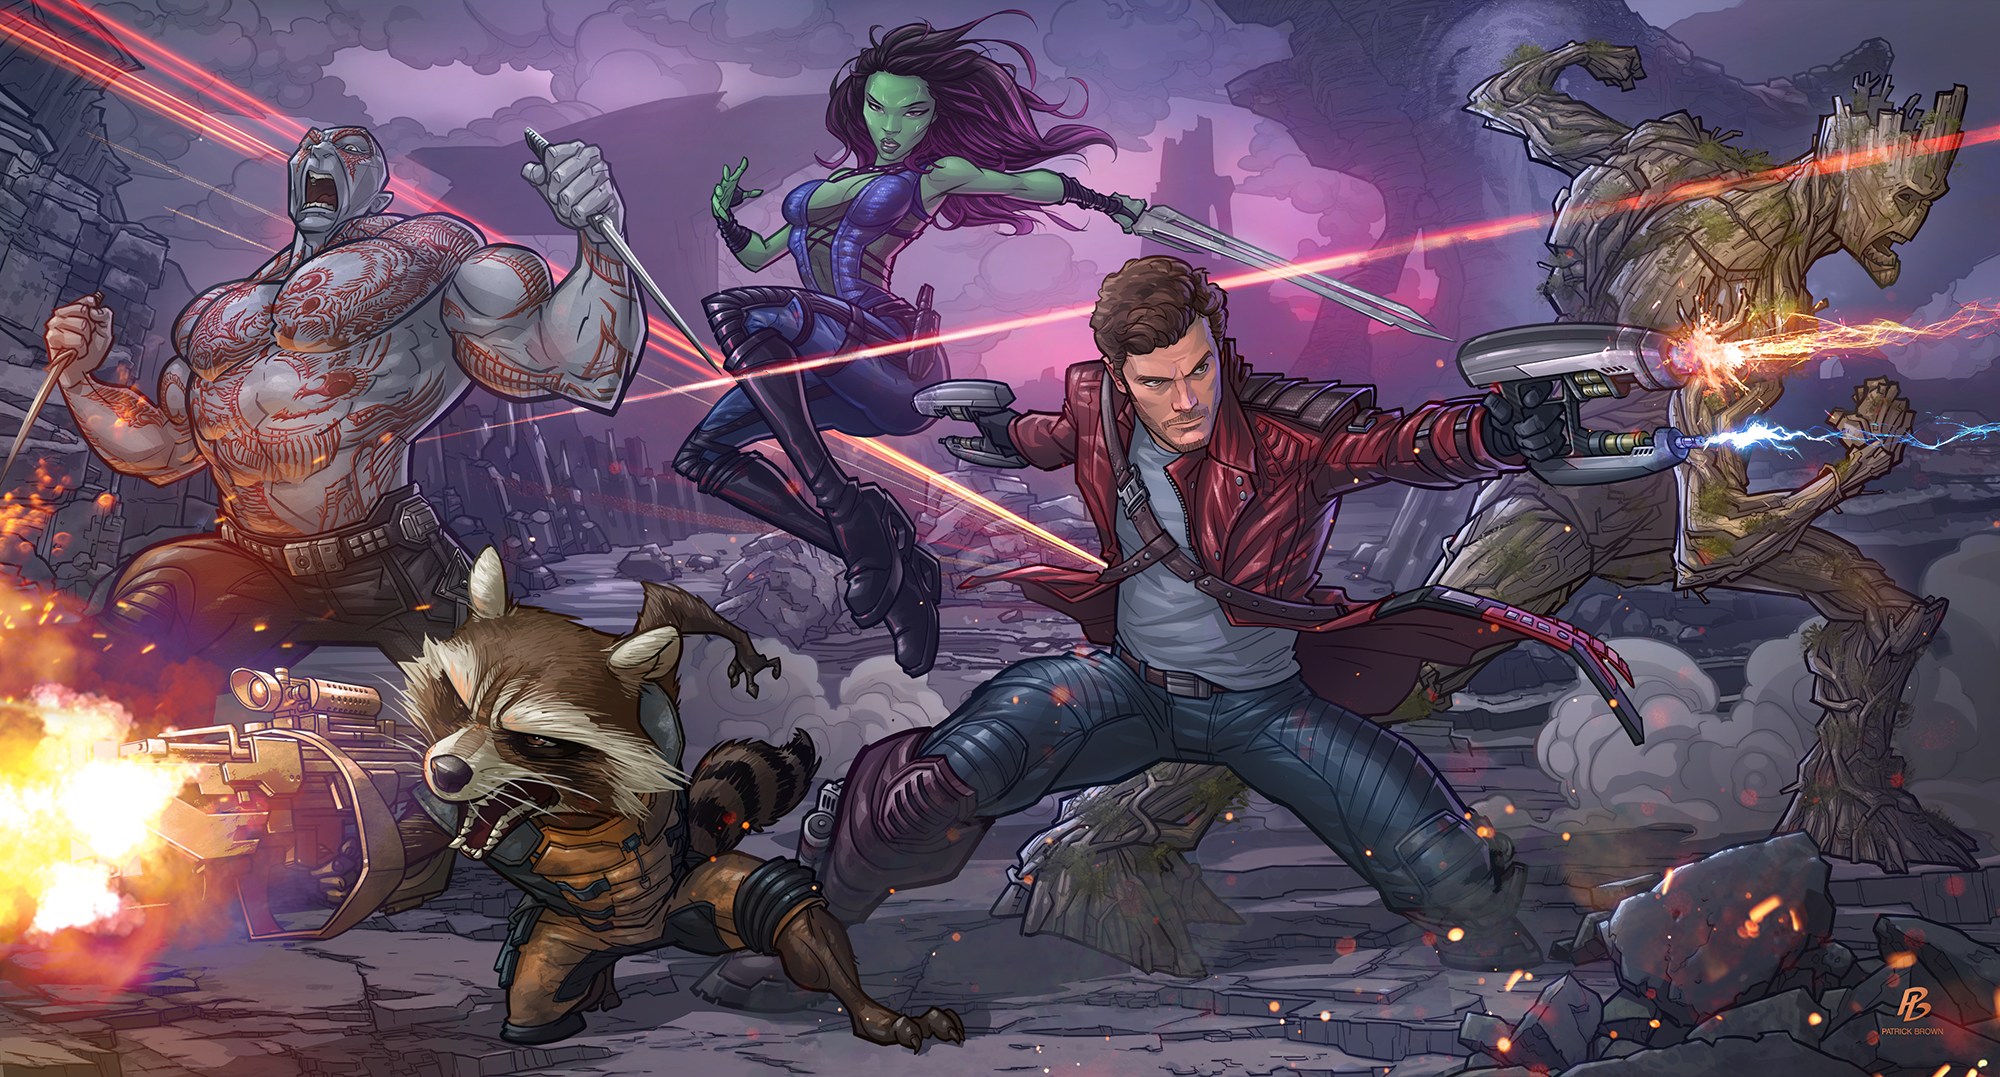 Guardians of the Galaxy by P. Brown